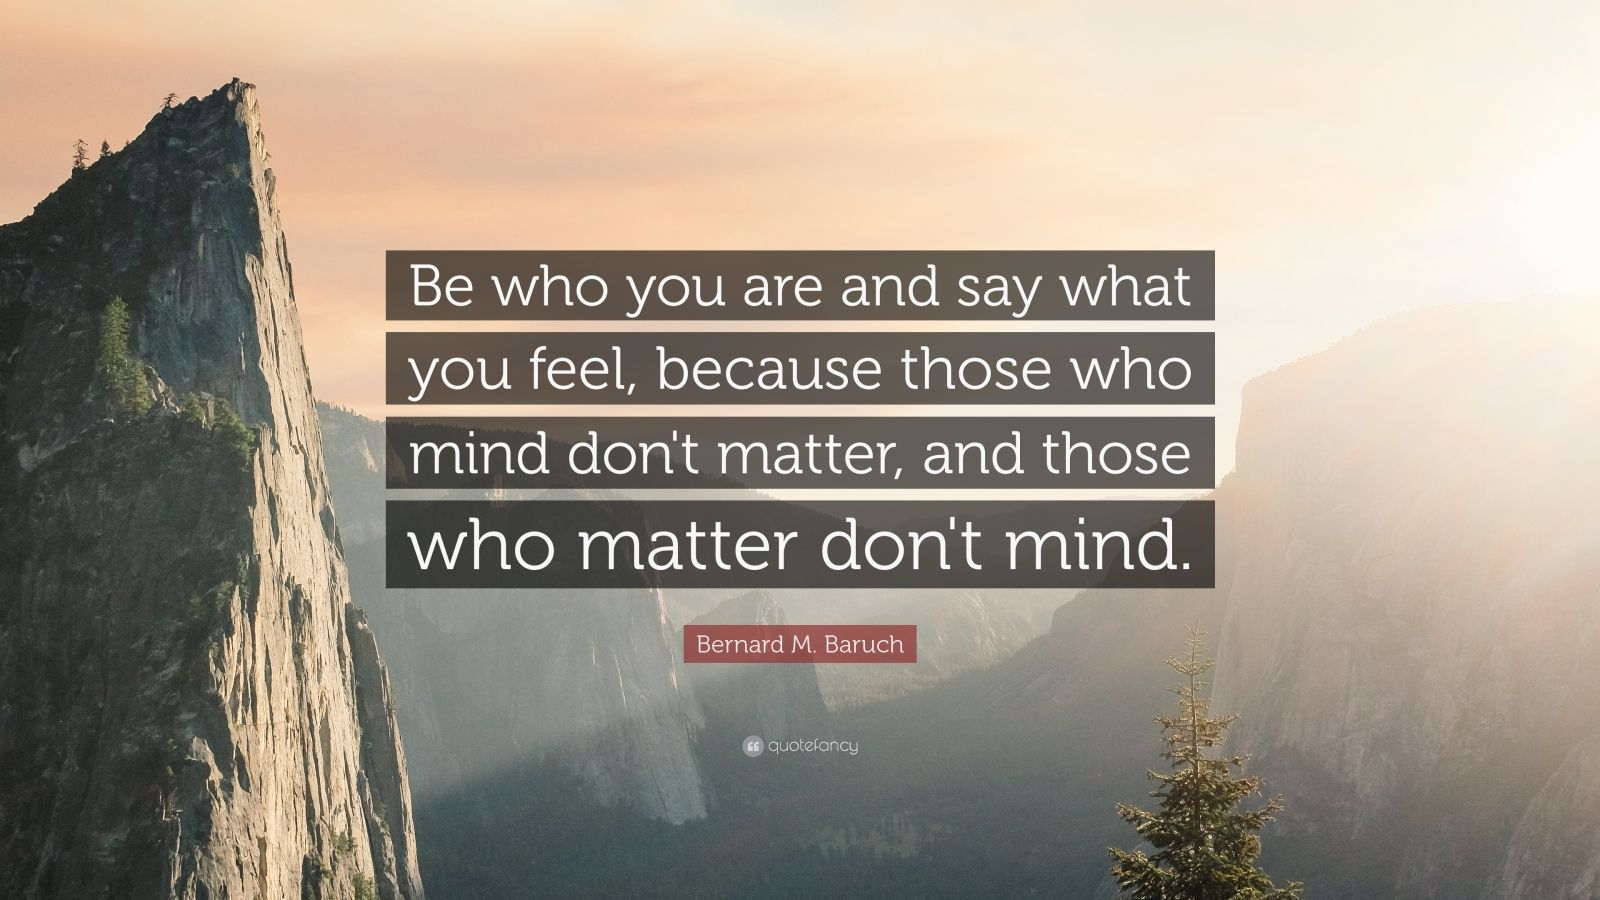 """Bernard M. Baruch Quote: """"Be who you are and say what you feel, because those who mind don't matter, and those who matter don't mind."""""""